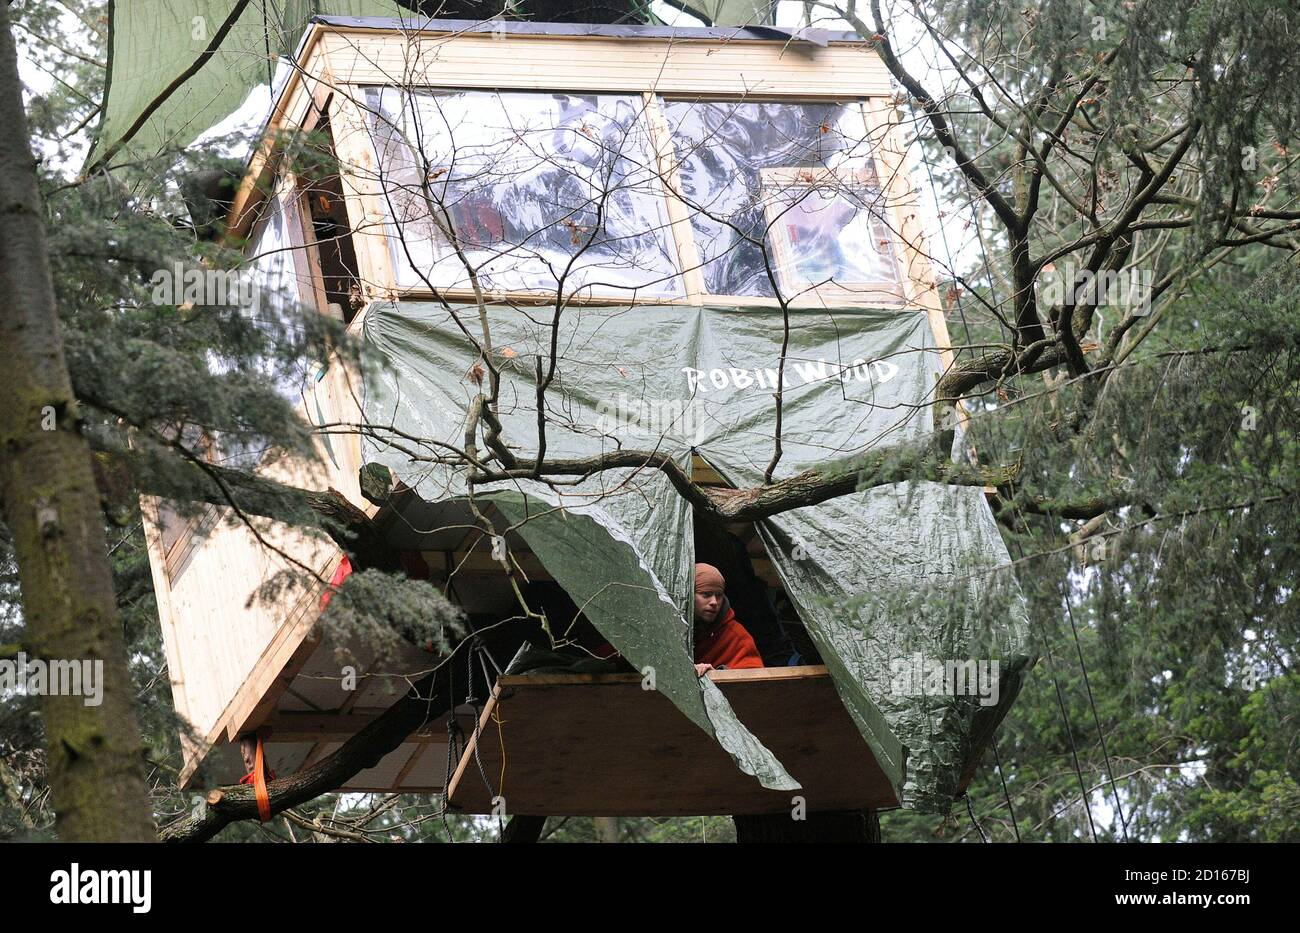 An activist of environmental organization Robin Wood observes police activities from a tree house, built in protest against the clearing of a wooded area for a new runway for the airport, in Frankfurt January 20, 2009. Some of the demonstrators have been living in the wooded area slated for clearing as a form of protest for the past 6 months. REUTERS/Kai Pfaffenbach (GERMANY) Stock Photo